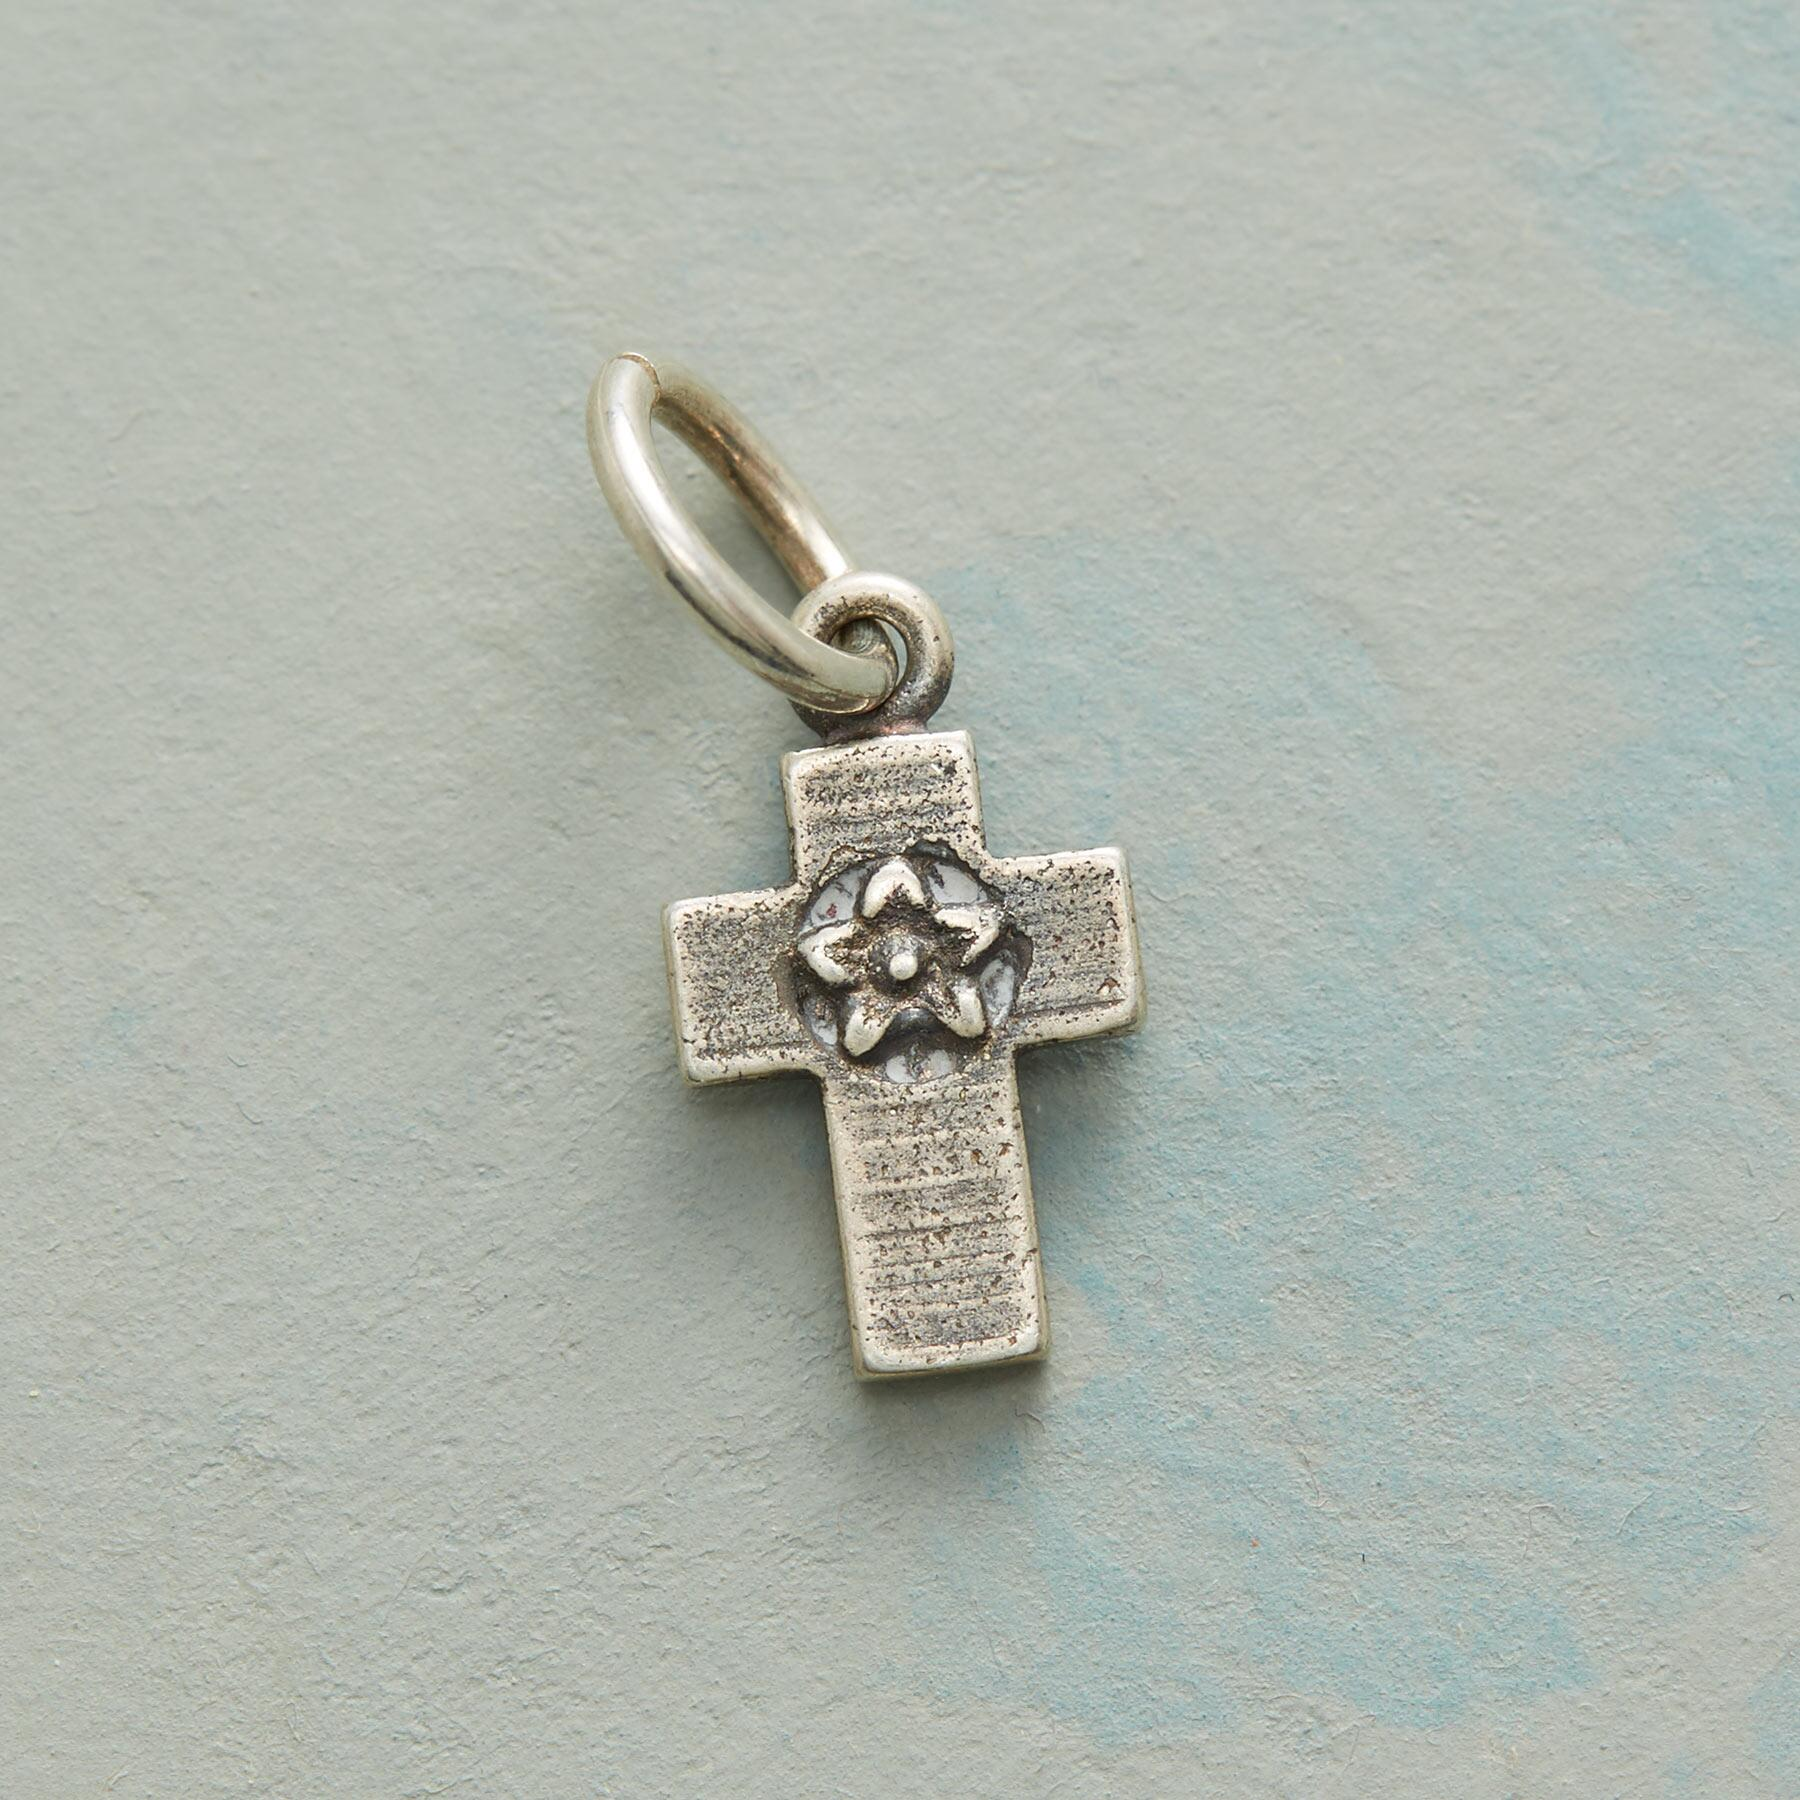 FLOWERS FAITH AND LOVE CROSS CHARM SS: View 1